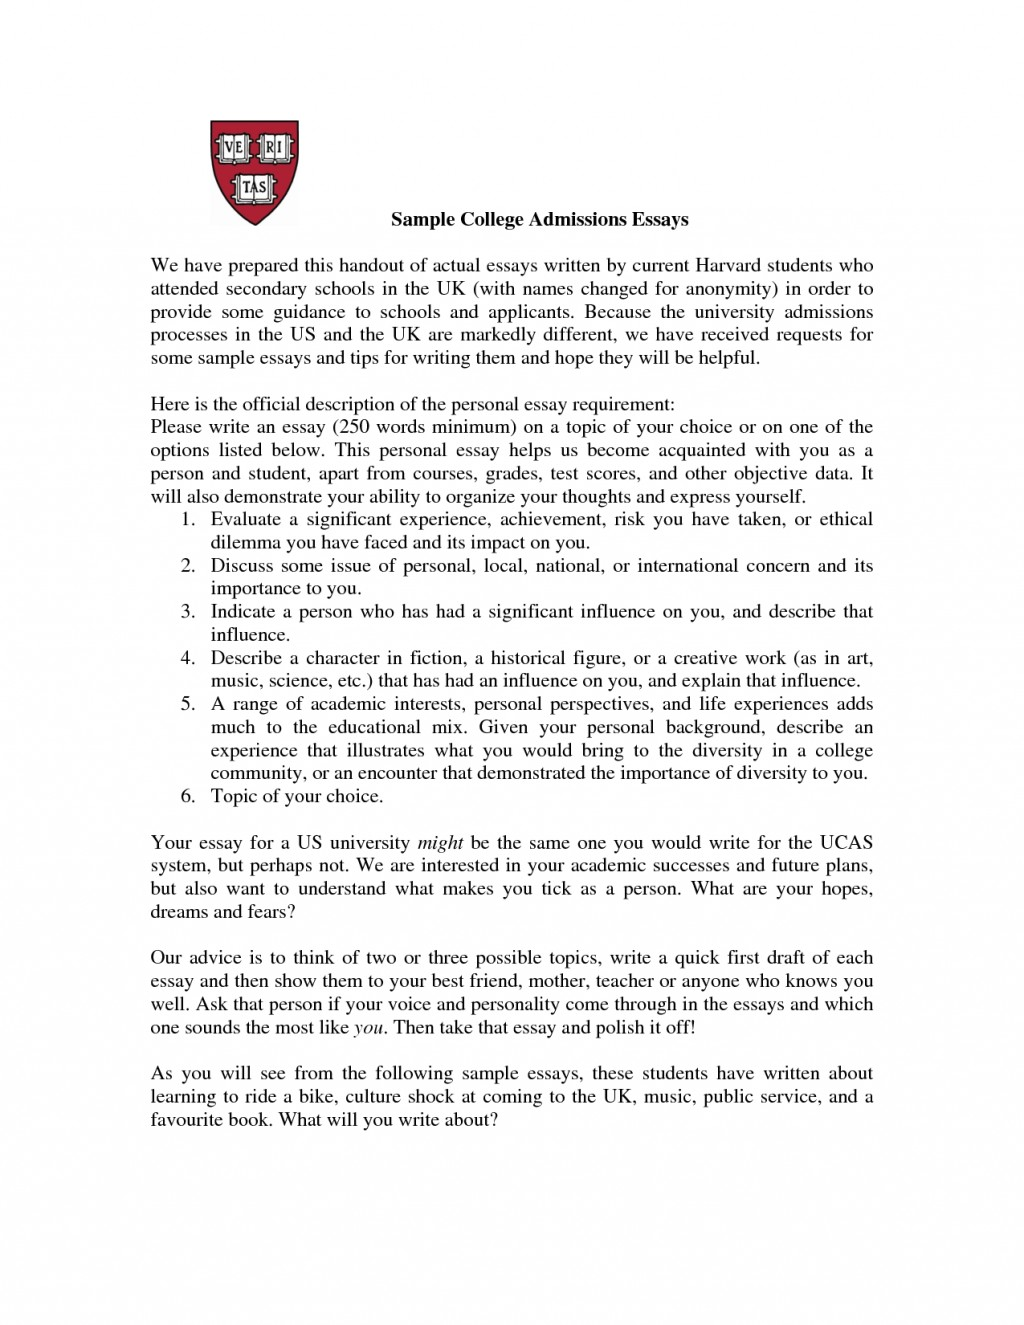 006 College Acceptance Essay Iafr4c5bwr Striking Admission Prompts 2015 Application Samples Engineering Large